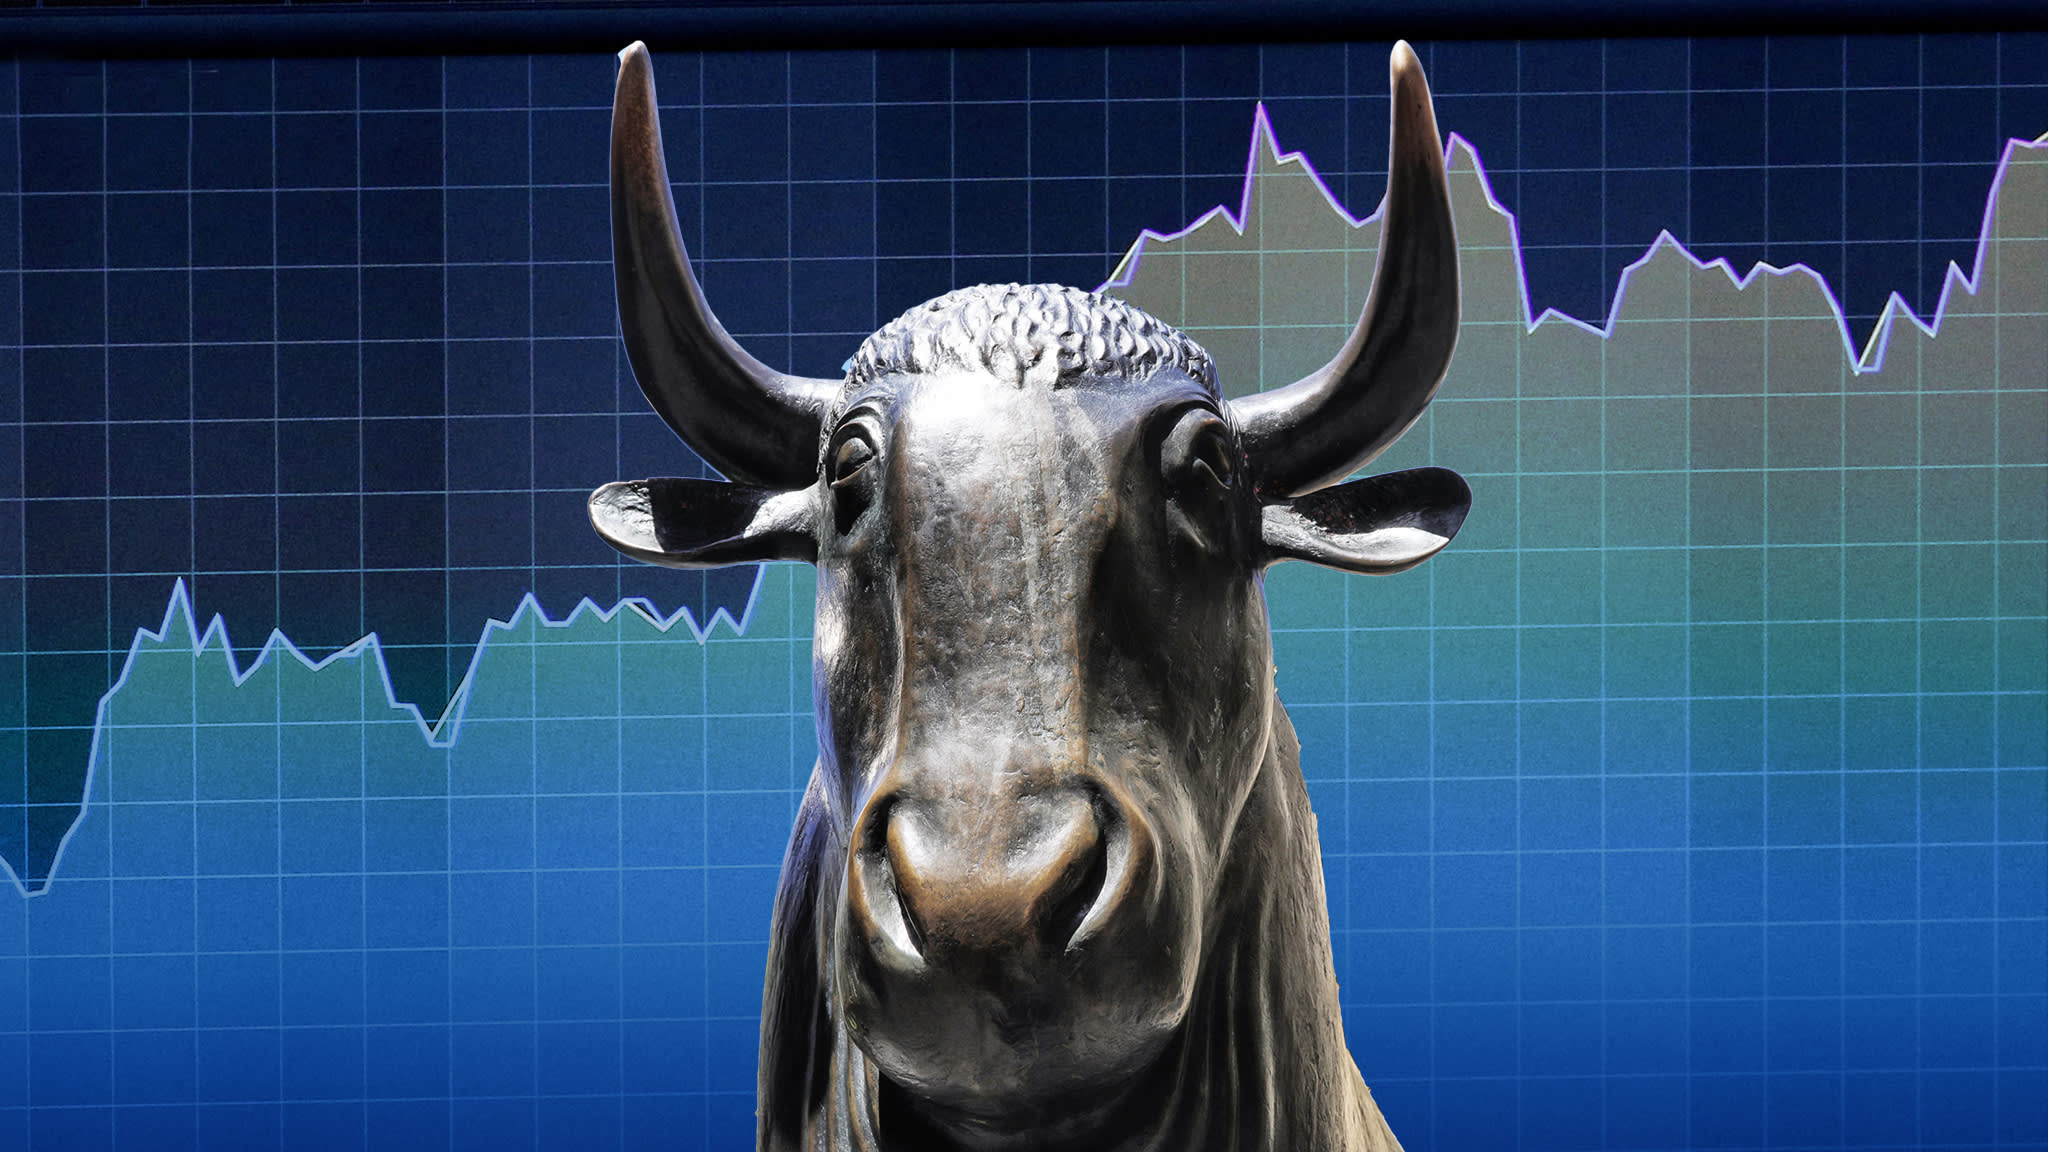 S&P 500 hits new high on way to record bull run